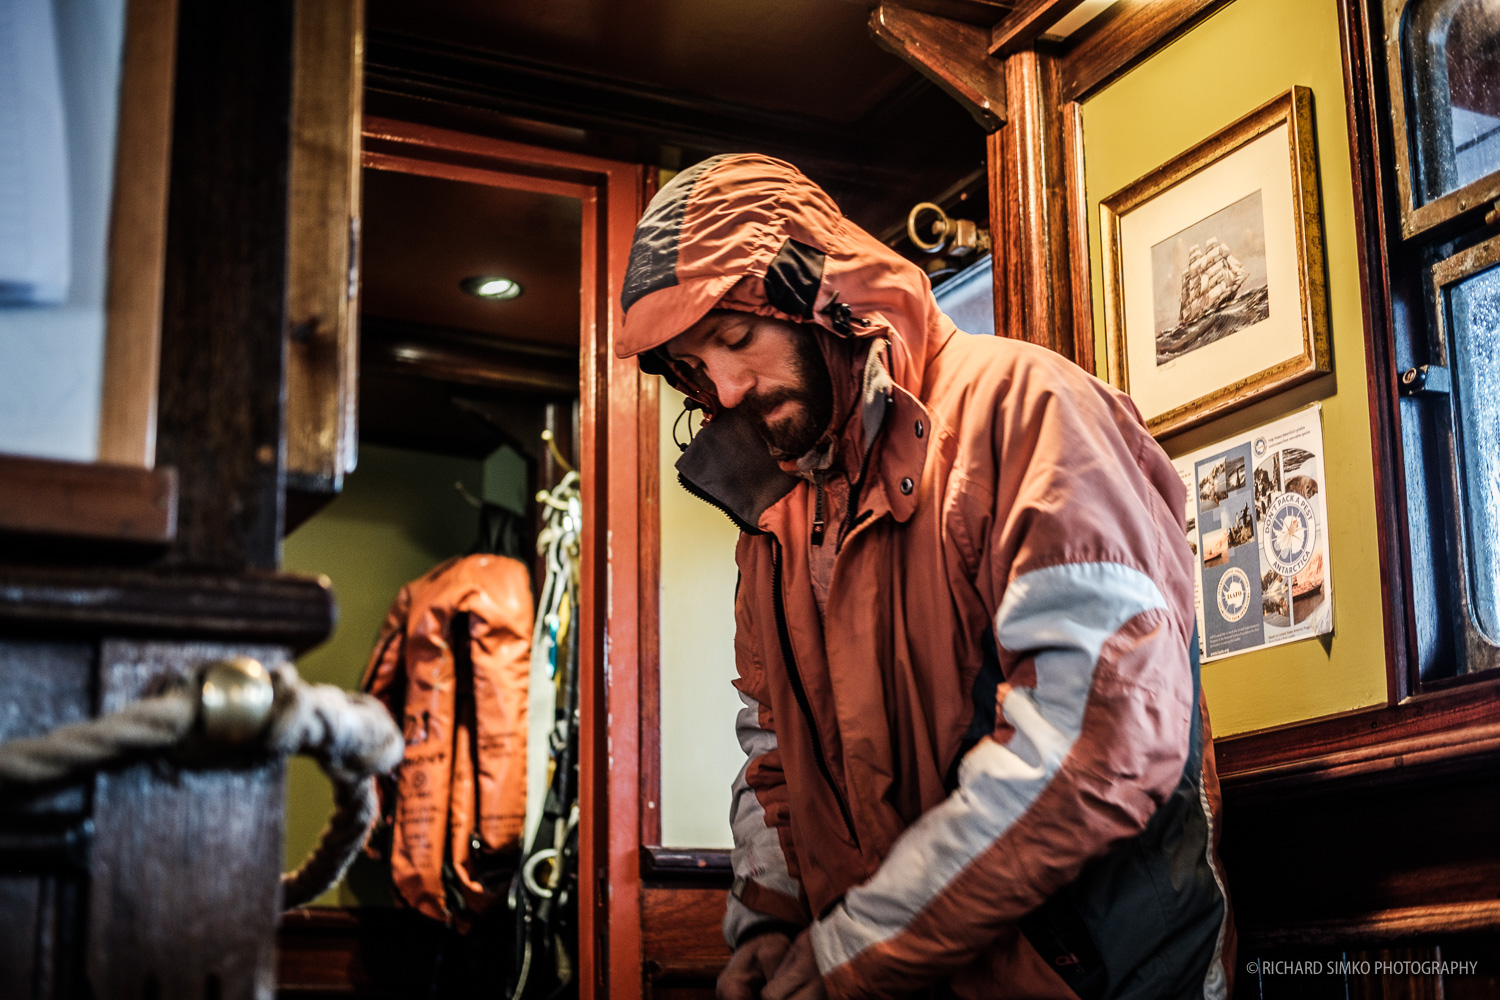 Carlos is getting ready for his shift. Get the wet gear on, put on harness and of he goes into wet misery outside. Well, it is not misery, it is actually pretty cool sailing on the Drake Passage.